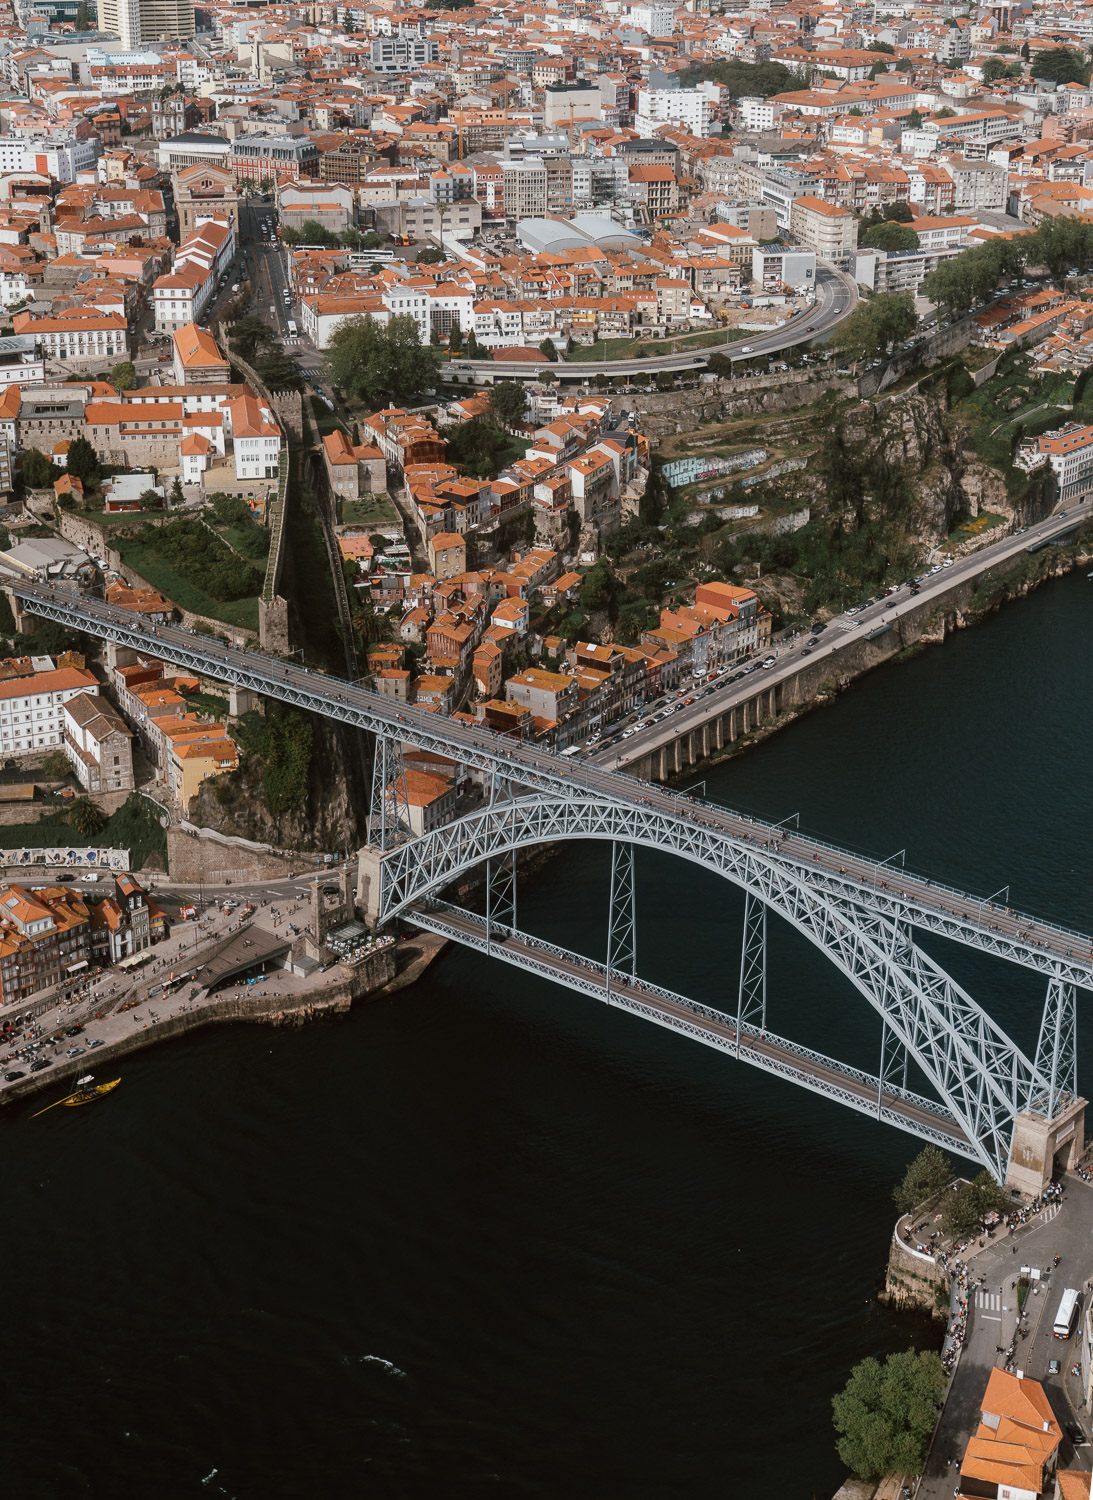 Porto Old Town from Helicopter